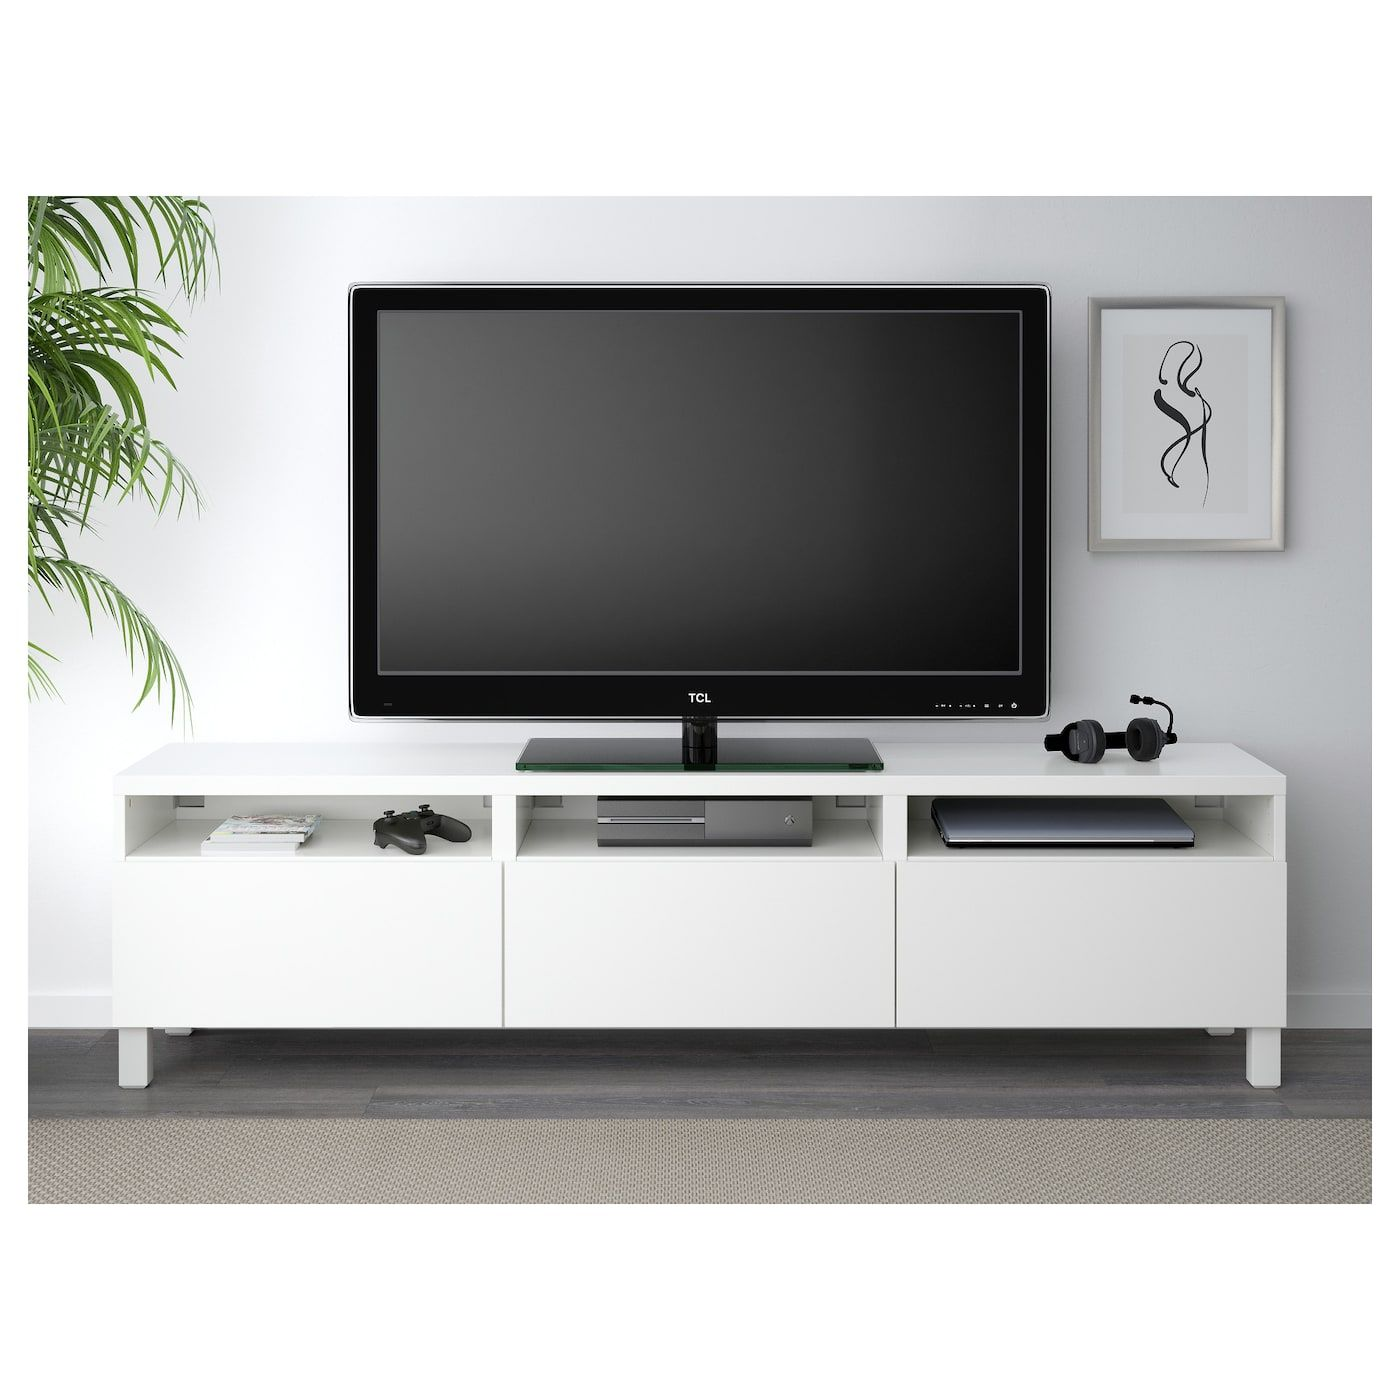 Tv Meubel Mat Glas.Besta Tv Meubel Met Lades Lappviken Wit Tv Bank Meubels En Tv